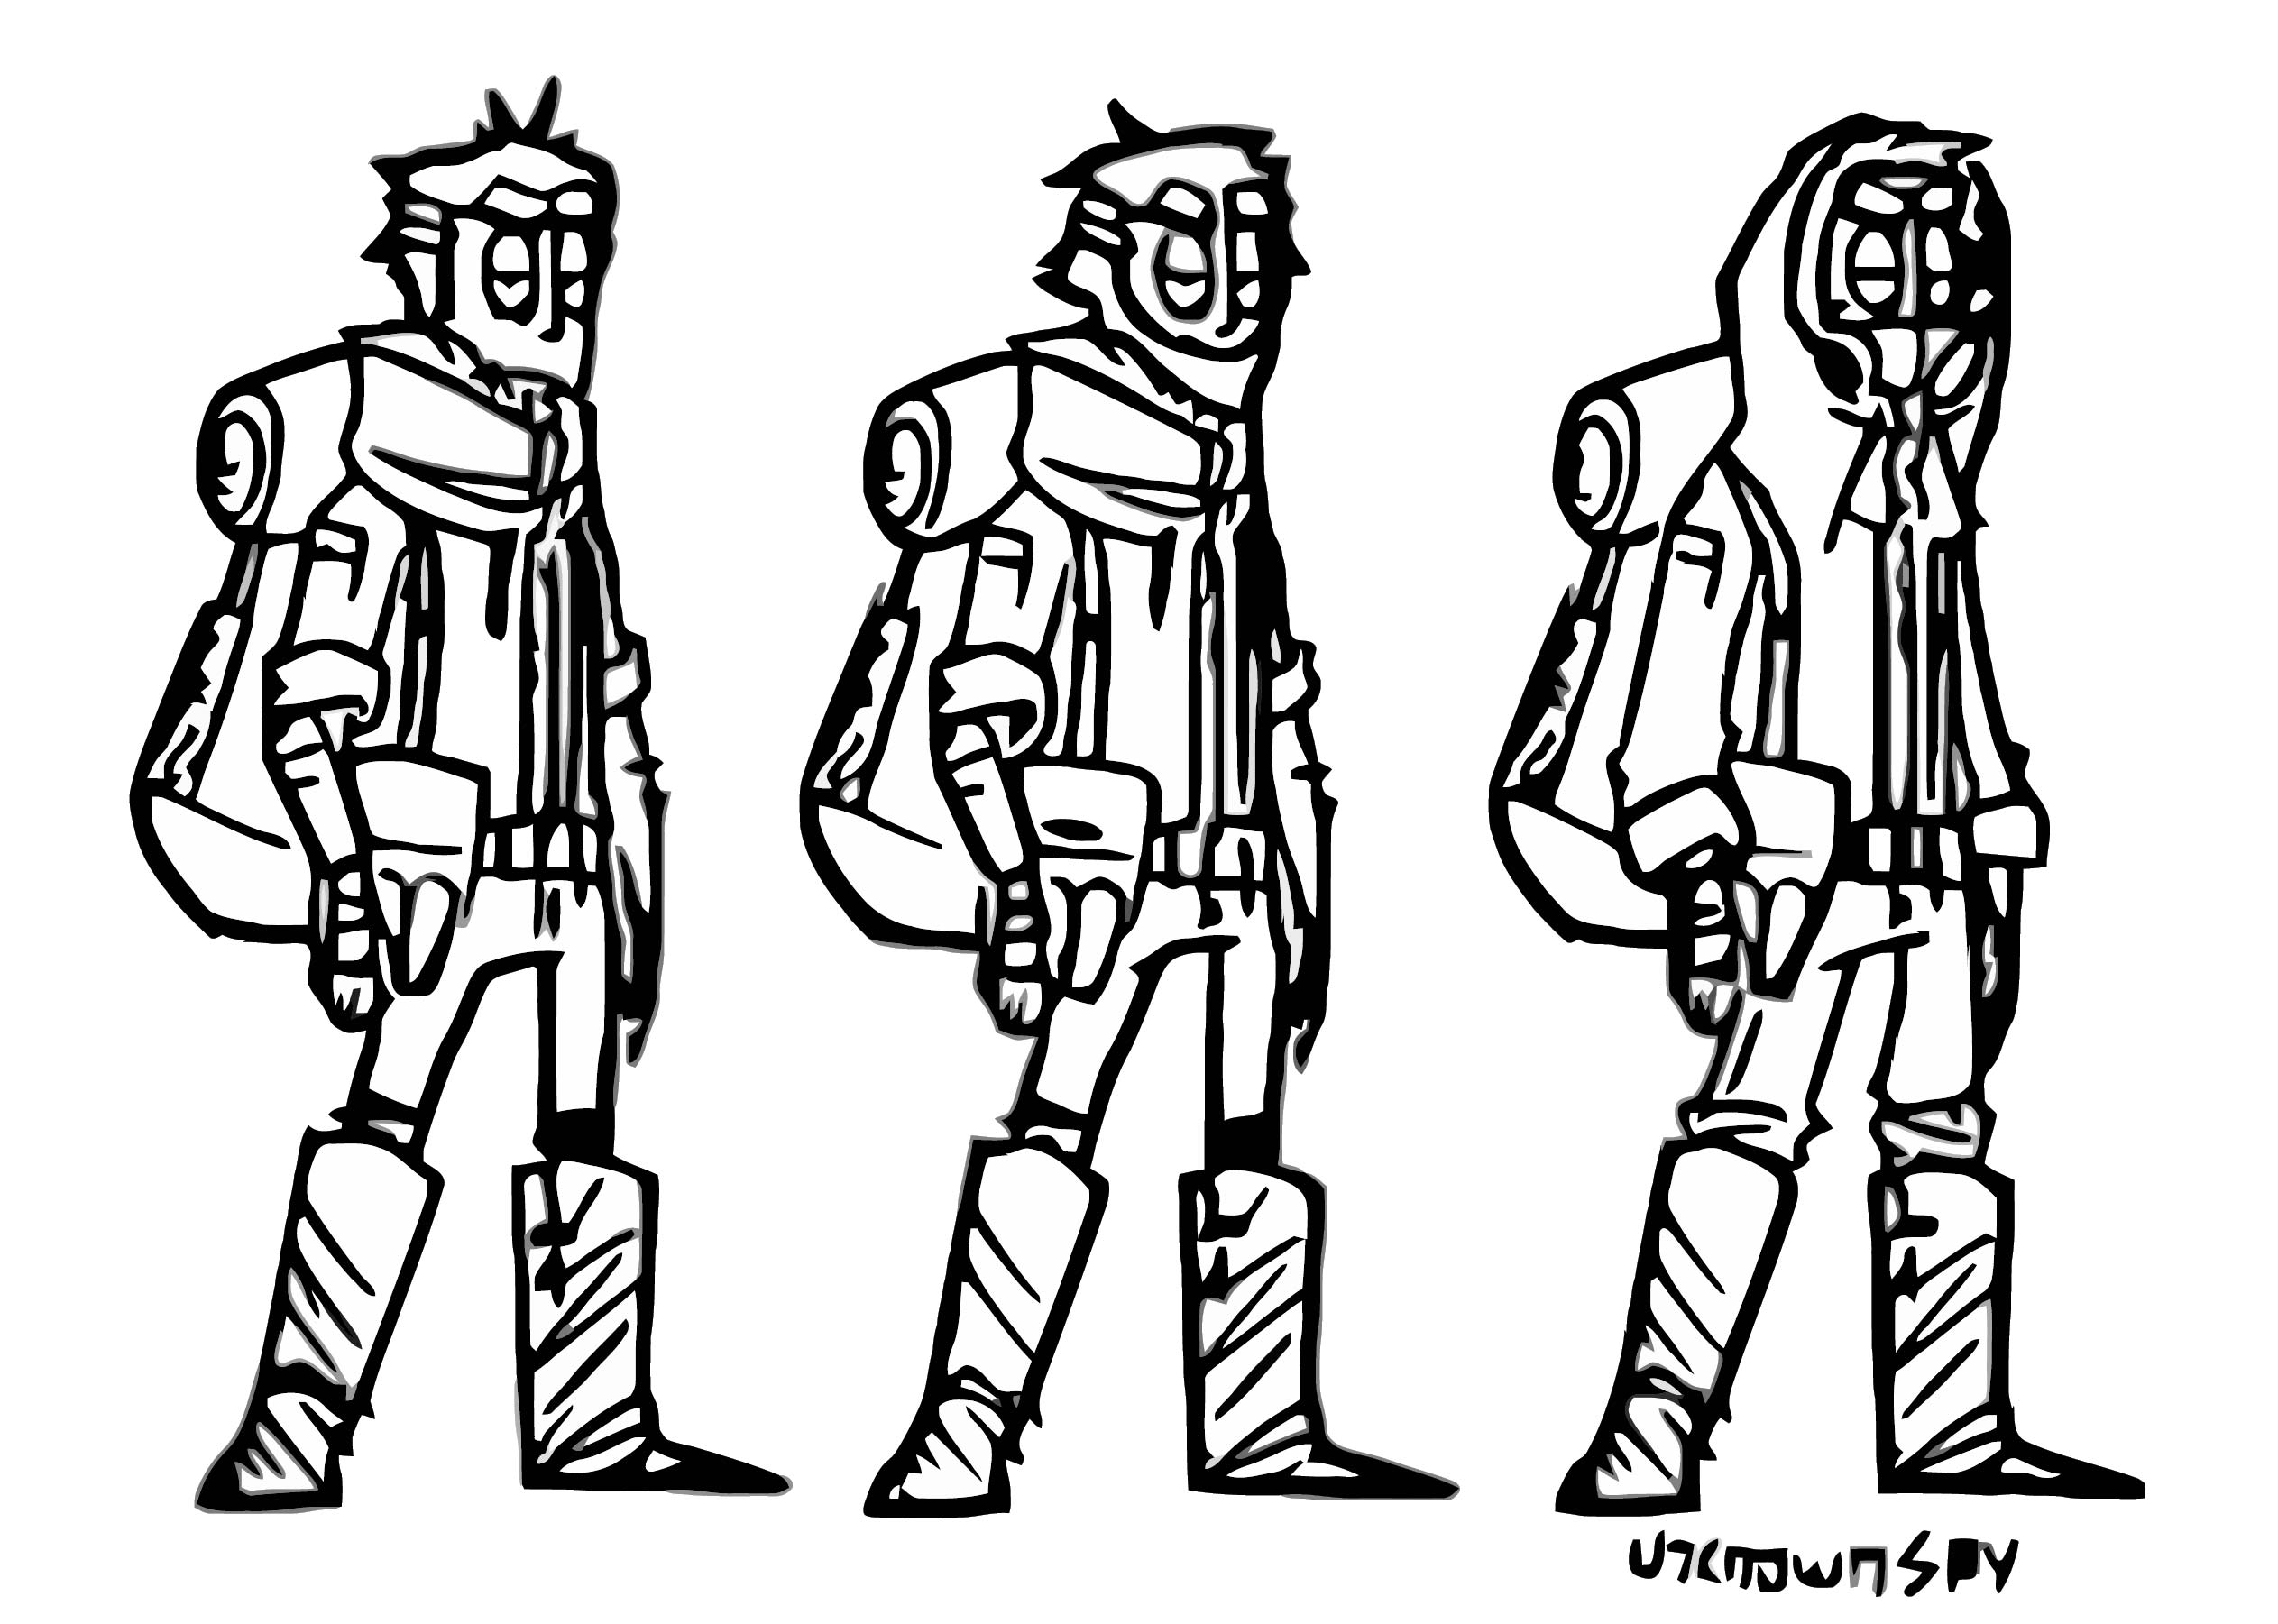 Post Apocalyptic Character Design Unknownspy D9brko7 Cartoonize Coloring Page